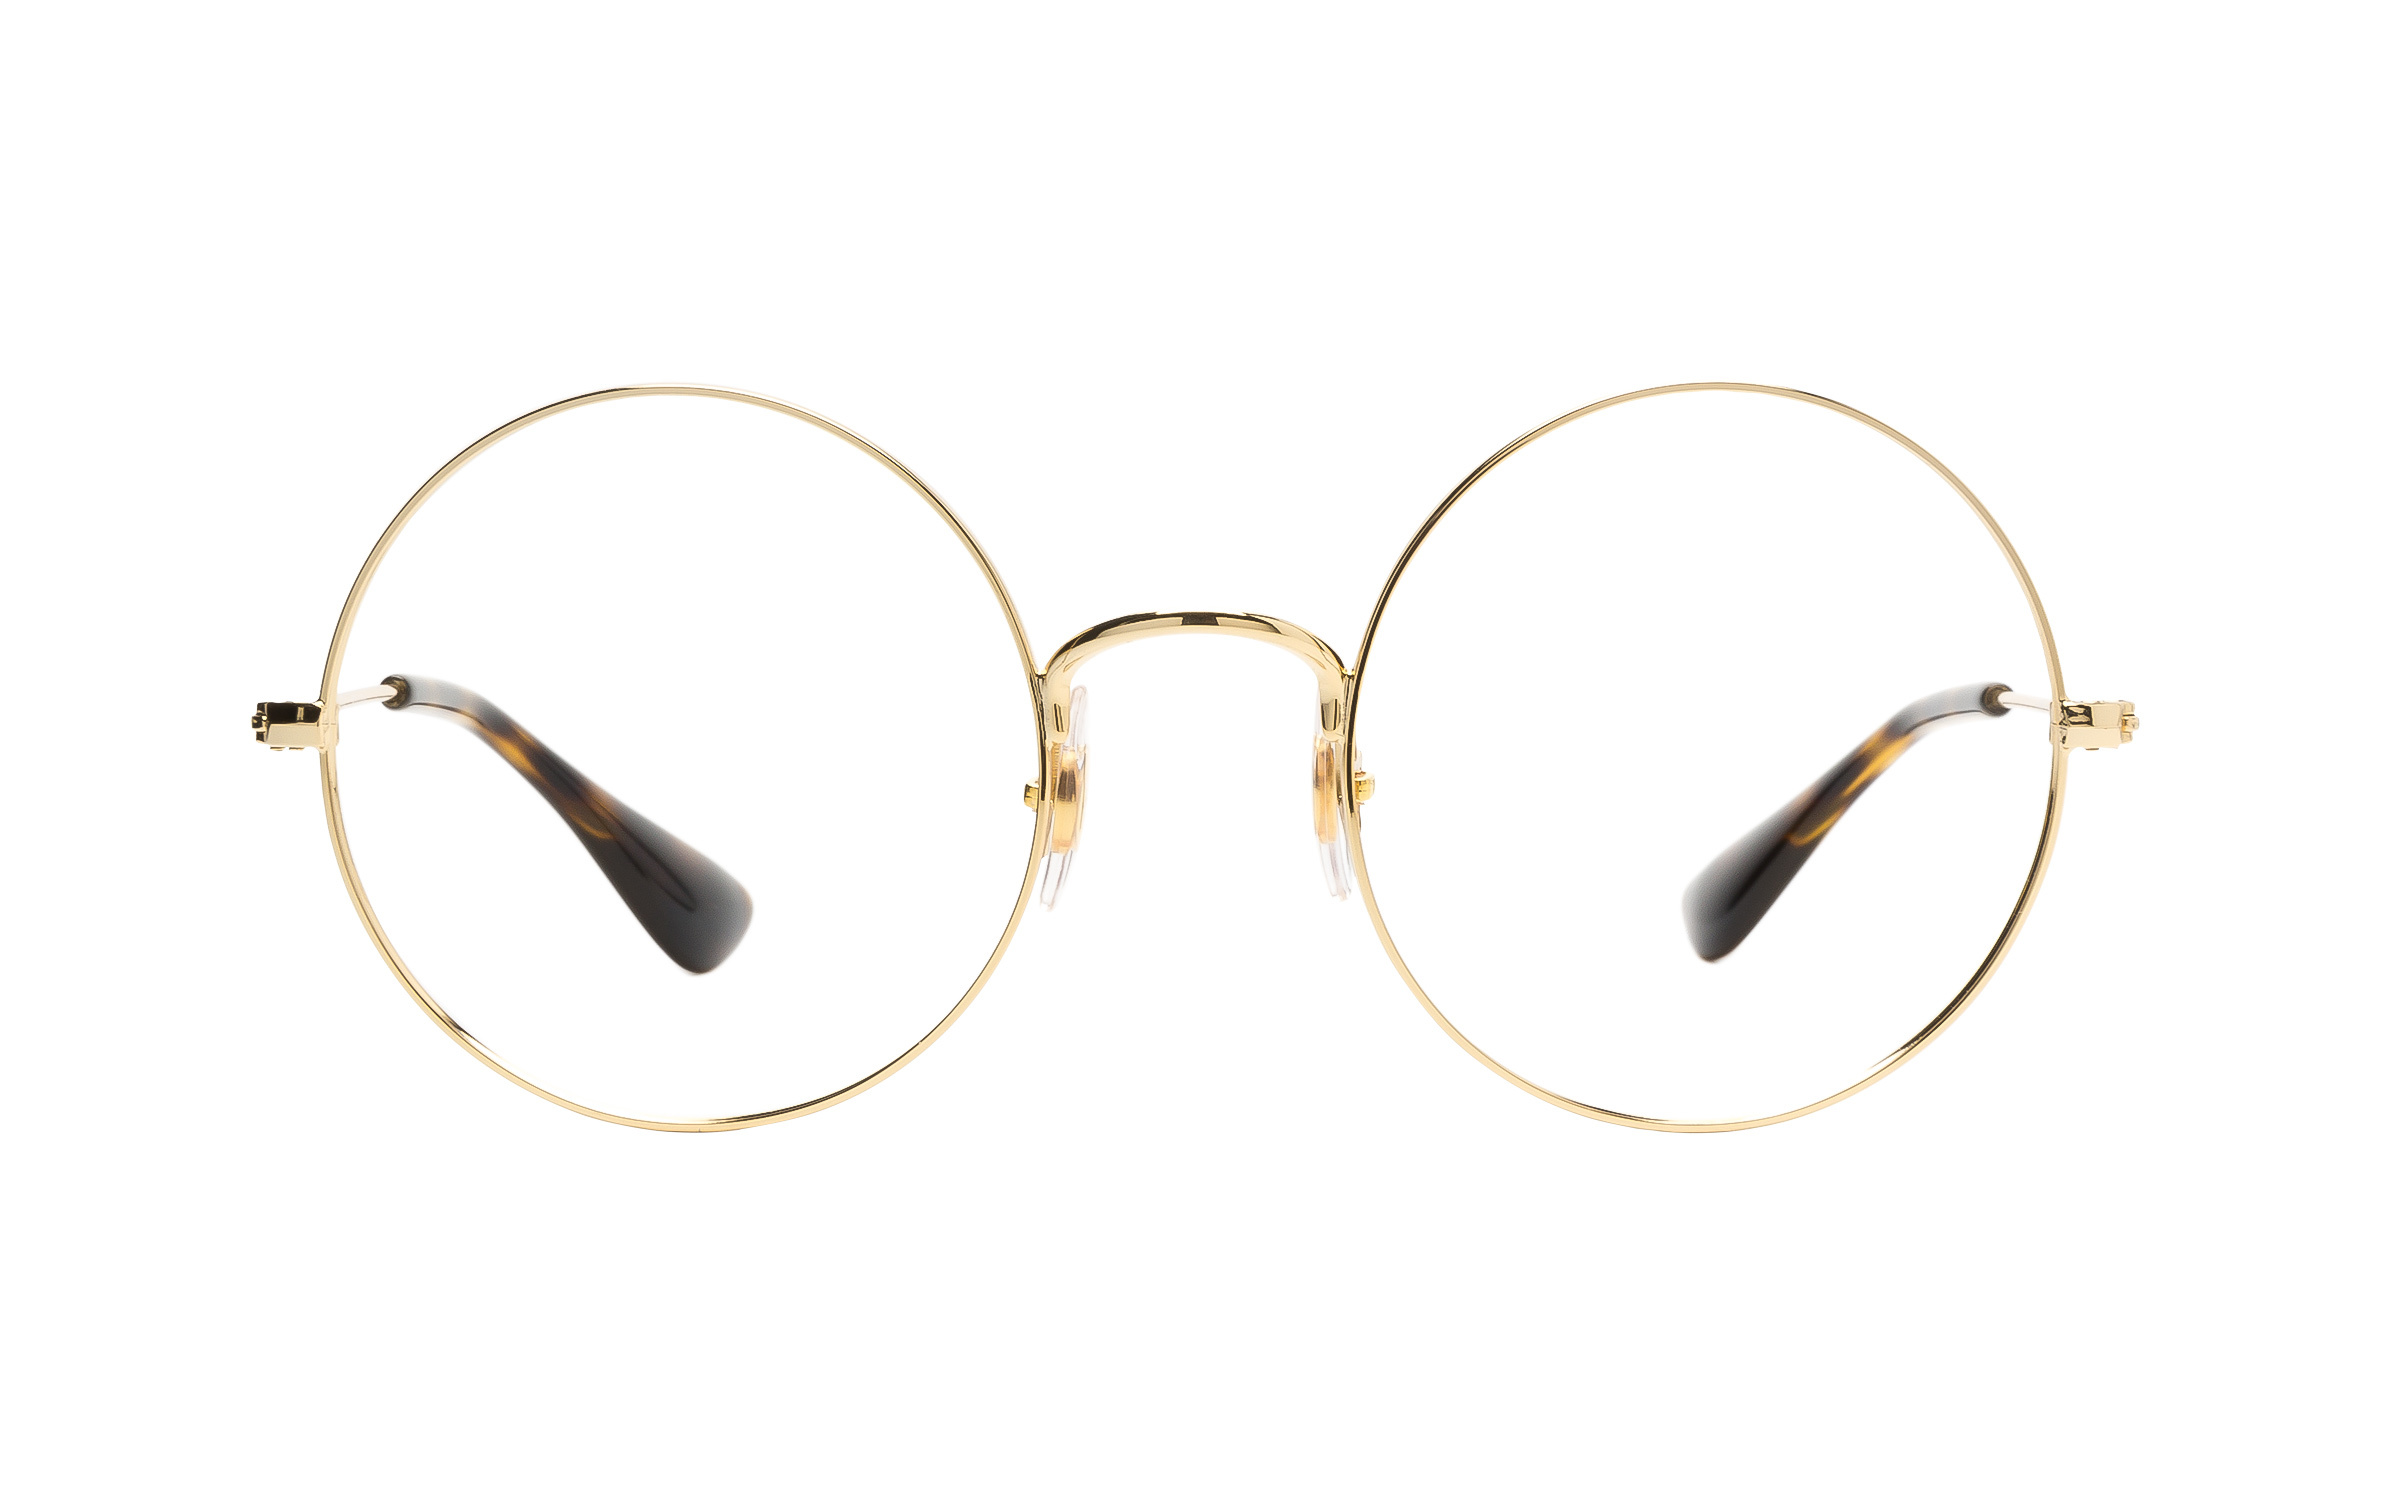 Ray-Ban 6392 2969 Eyeglasses and Frame in Gold | Acetate - Online Coastal